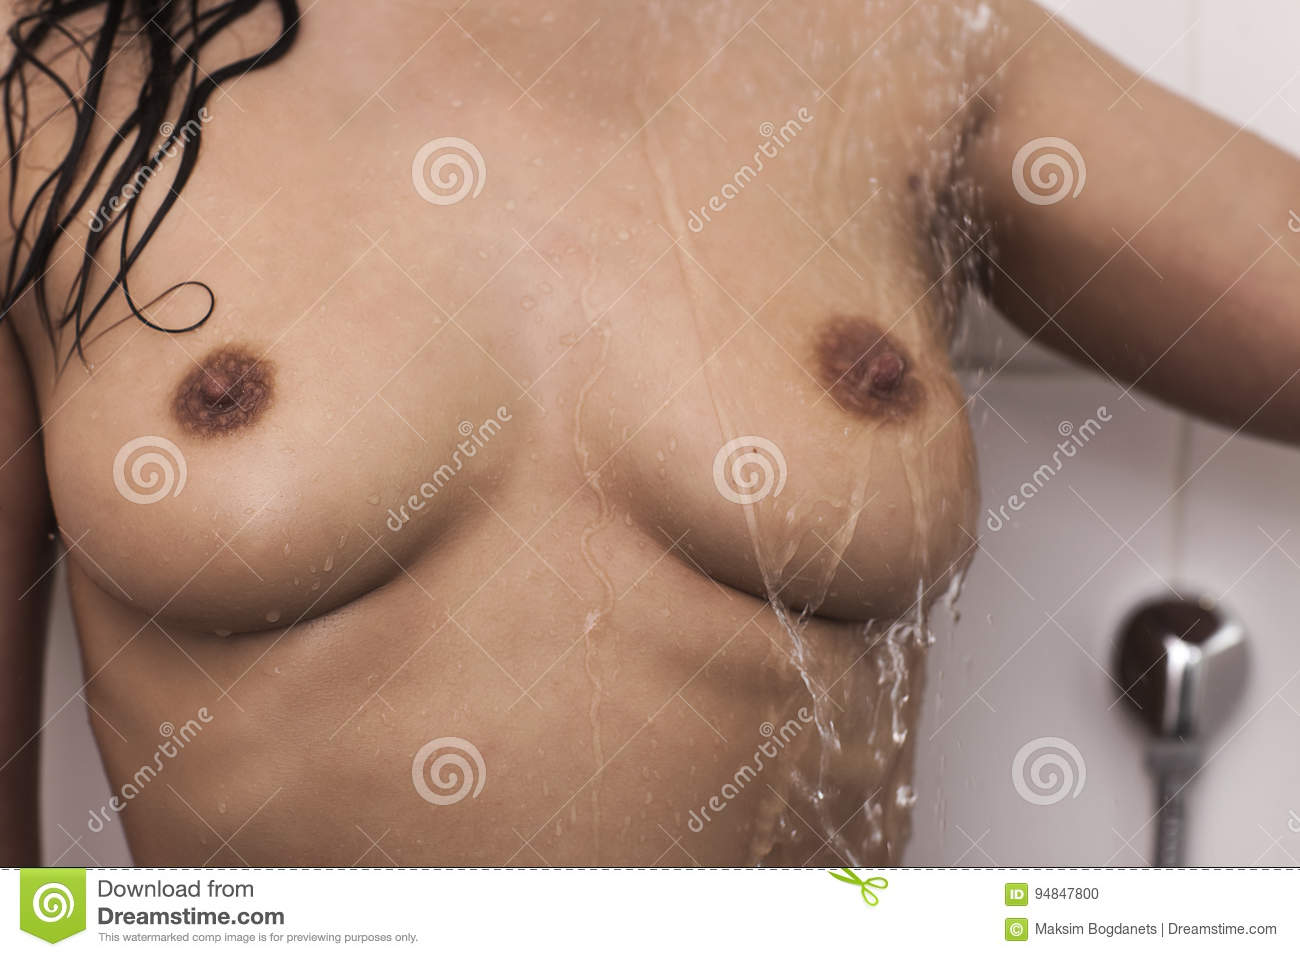 woman taking shower, full naked uncovered body, unrecognizable